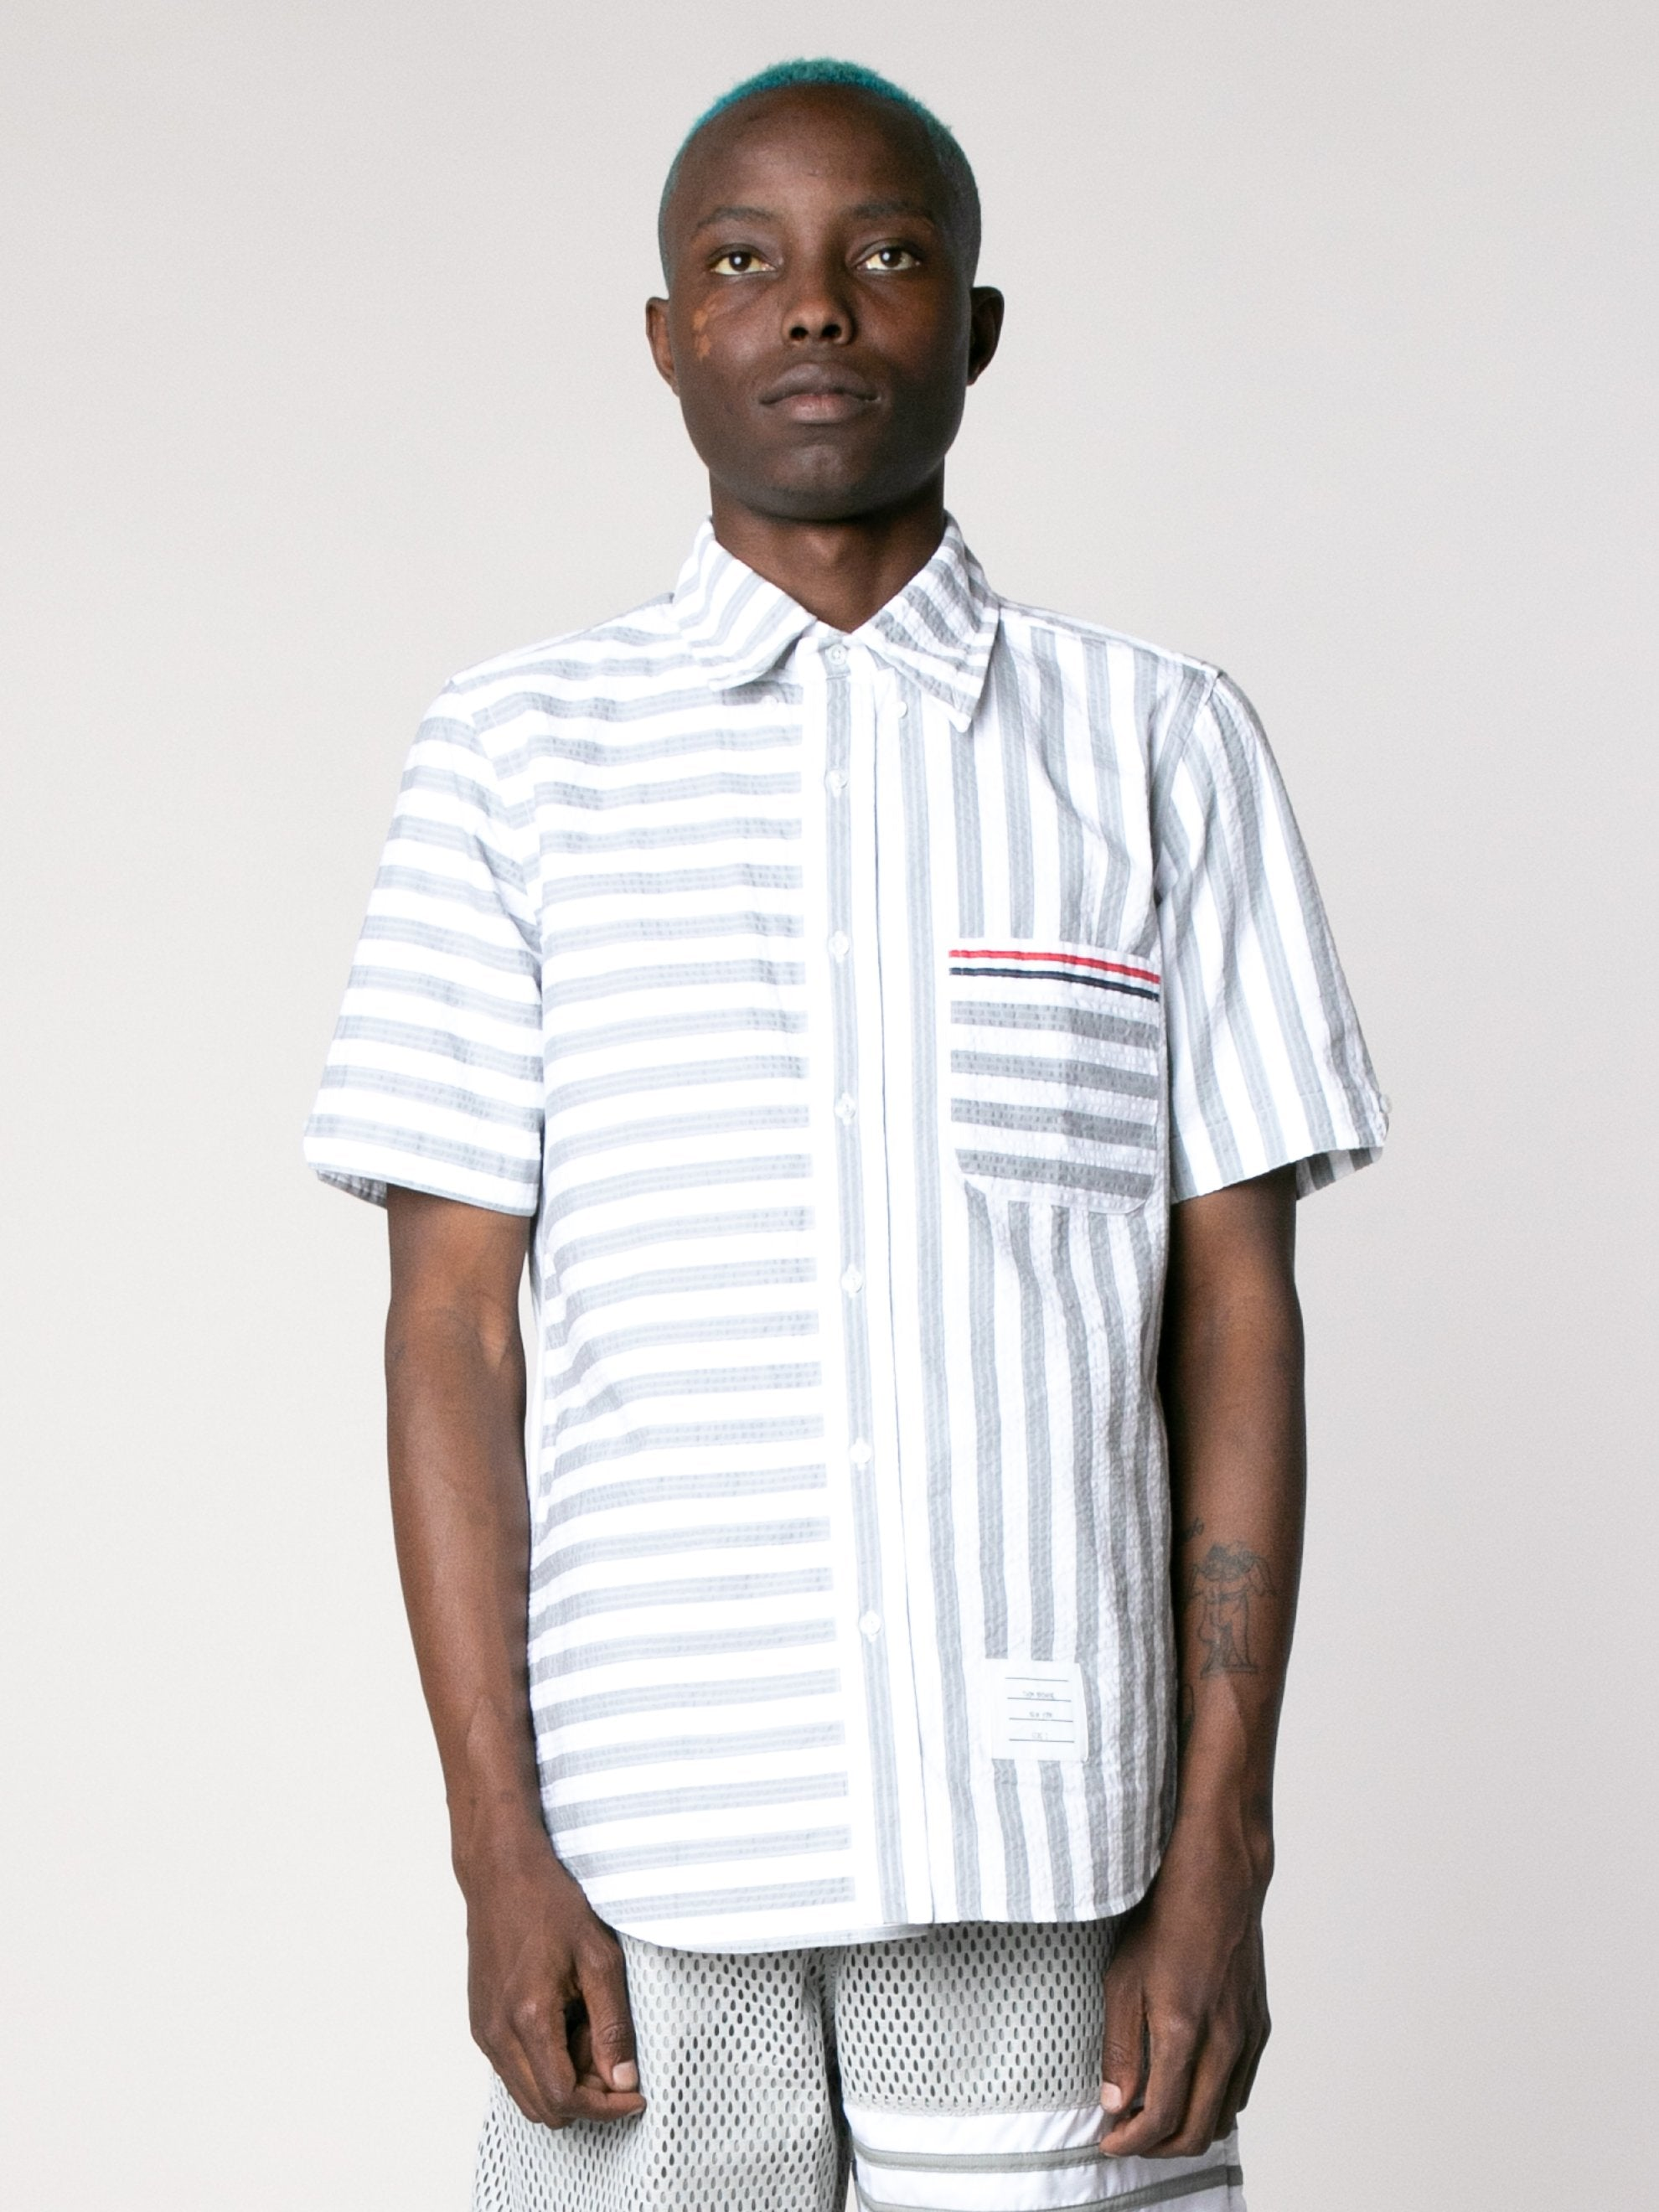 Med Grey Straight Fit Button Down Short Sleeve Shirt In Engineered RWB Wide Universty Stripe Shirt Seersucker 2